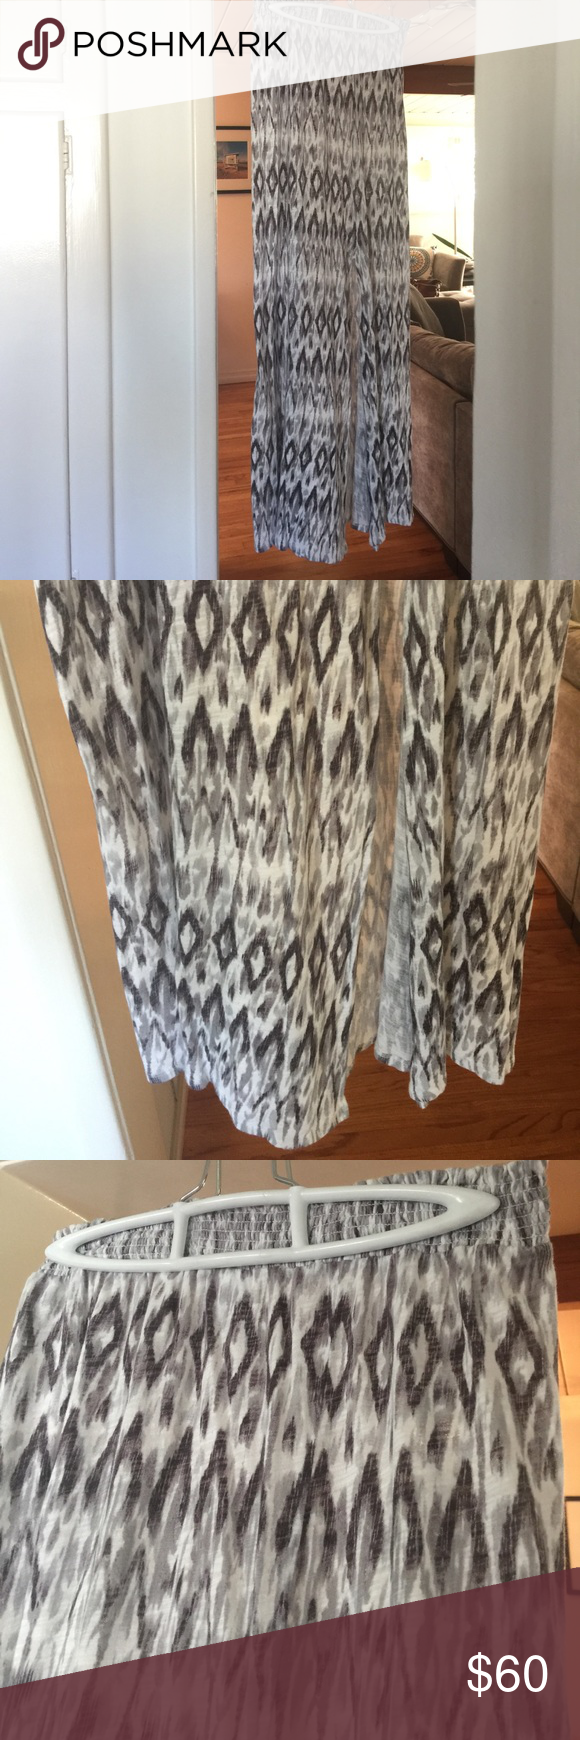 "Joie S•O•F•T maxi skirt with side slit Like wearing the most comfortable, worn-in t-shirt! Joie ""SOFT"" line lives up to expectations. Elastic waistband. Side slit for mobility. Black, white, gray ikat. Worn once. Soft Joie Skirts Maxi"